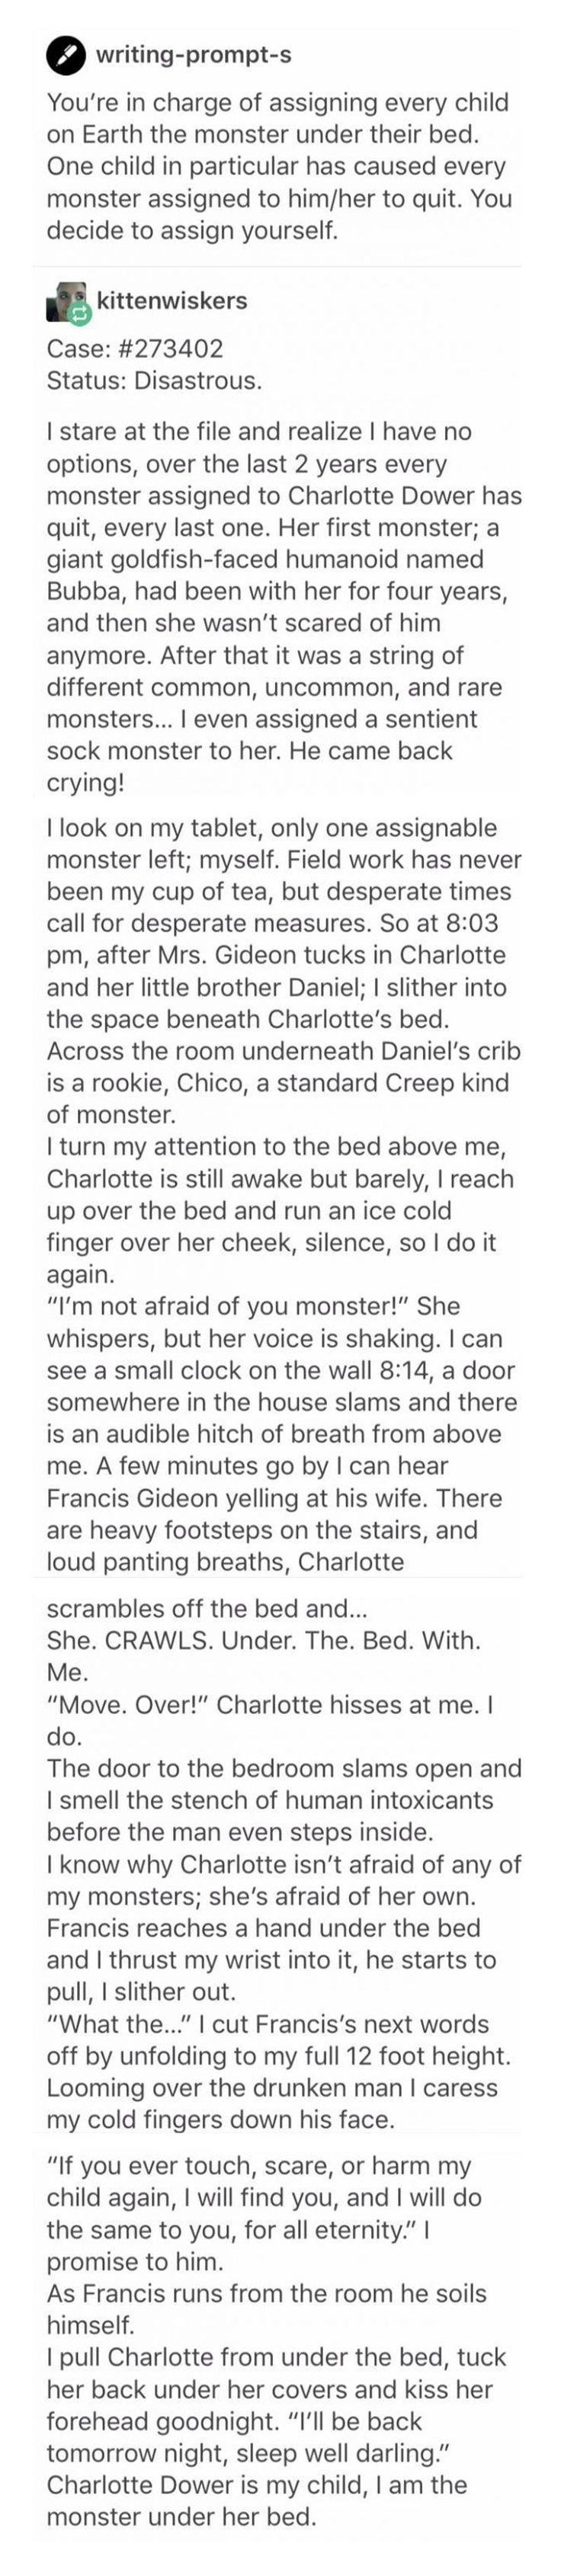 I'm not afraid of you, monster. [Long read] http://ibeebz.com